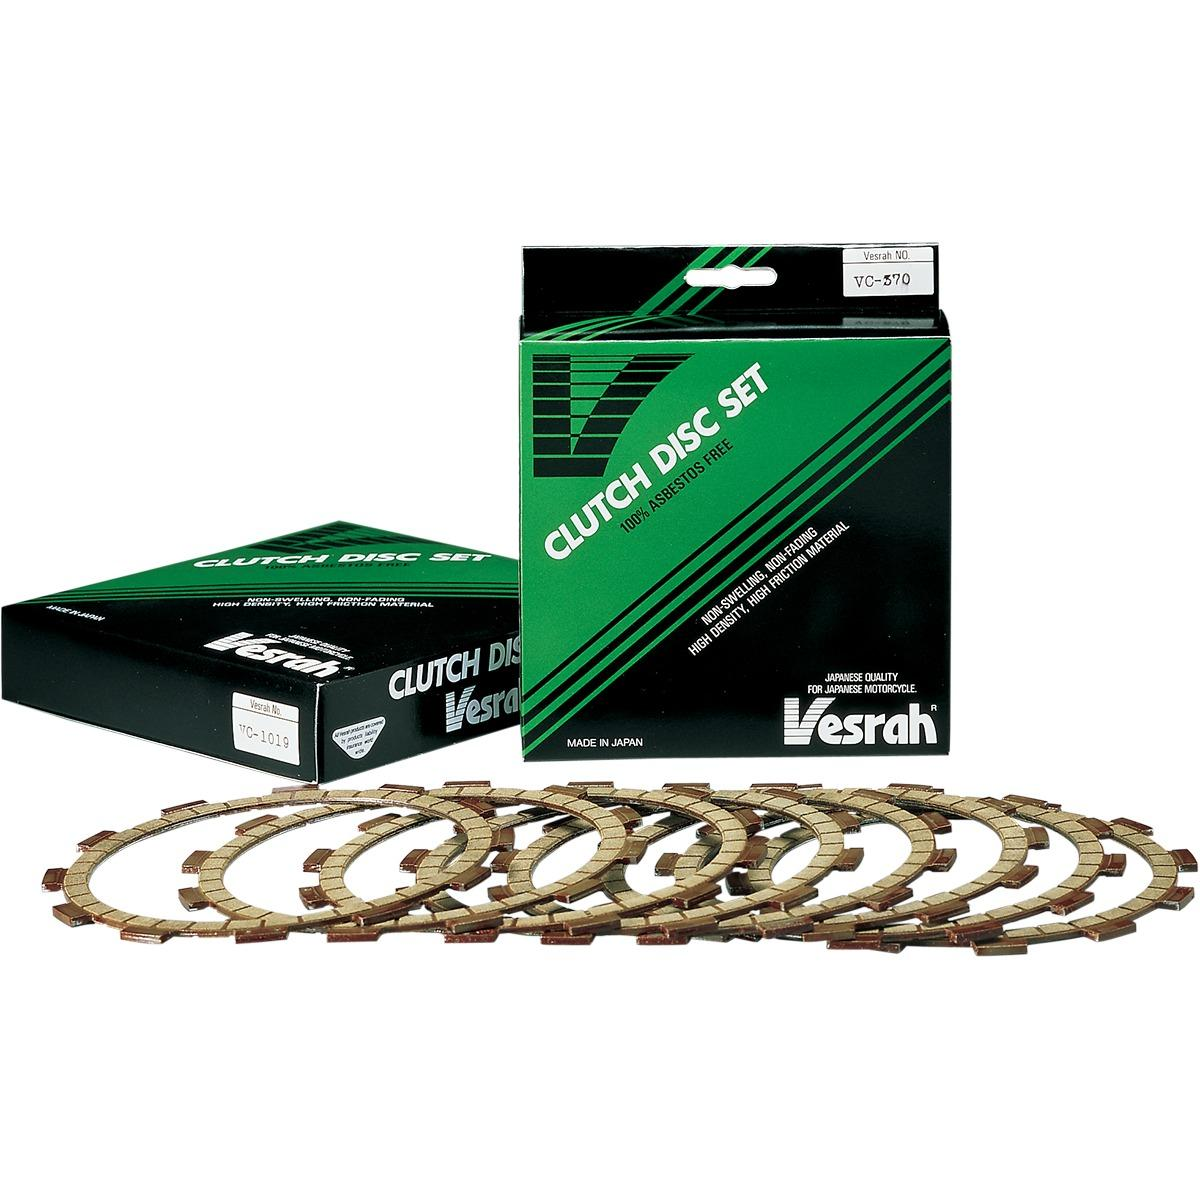 Vesrah Clutch Disc Set